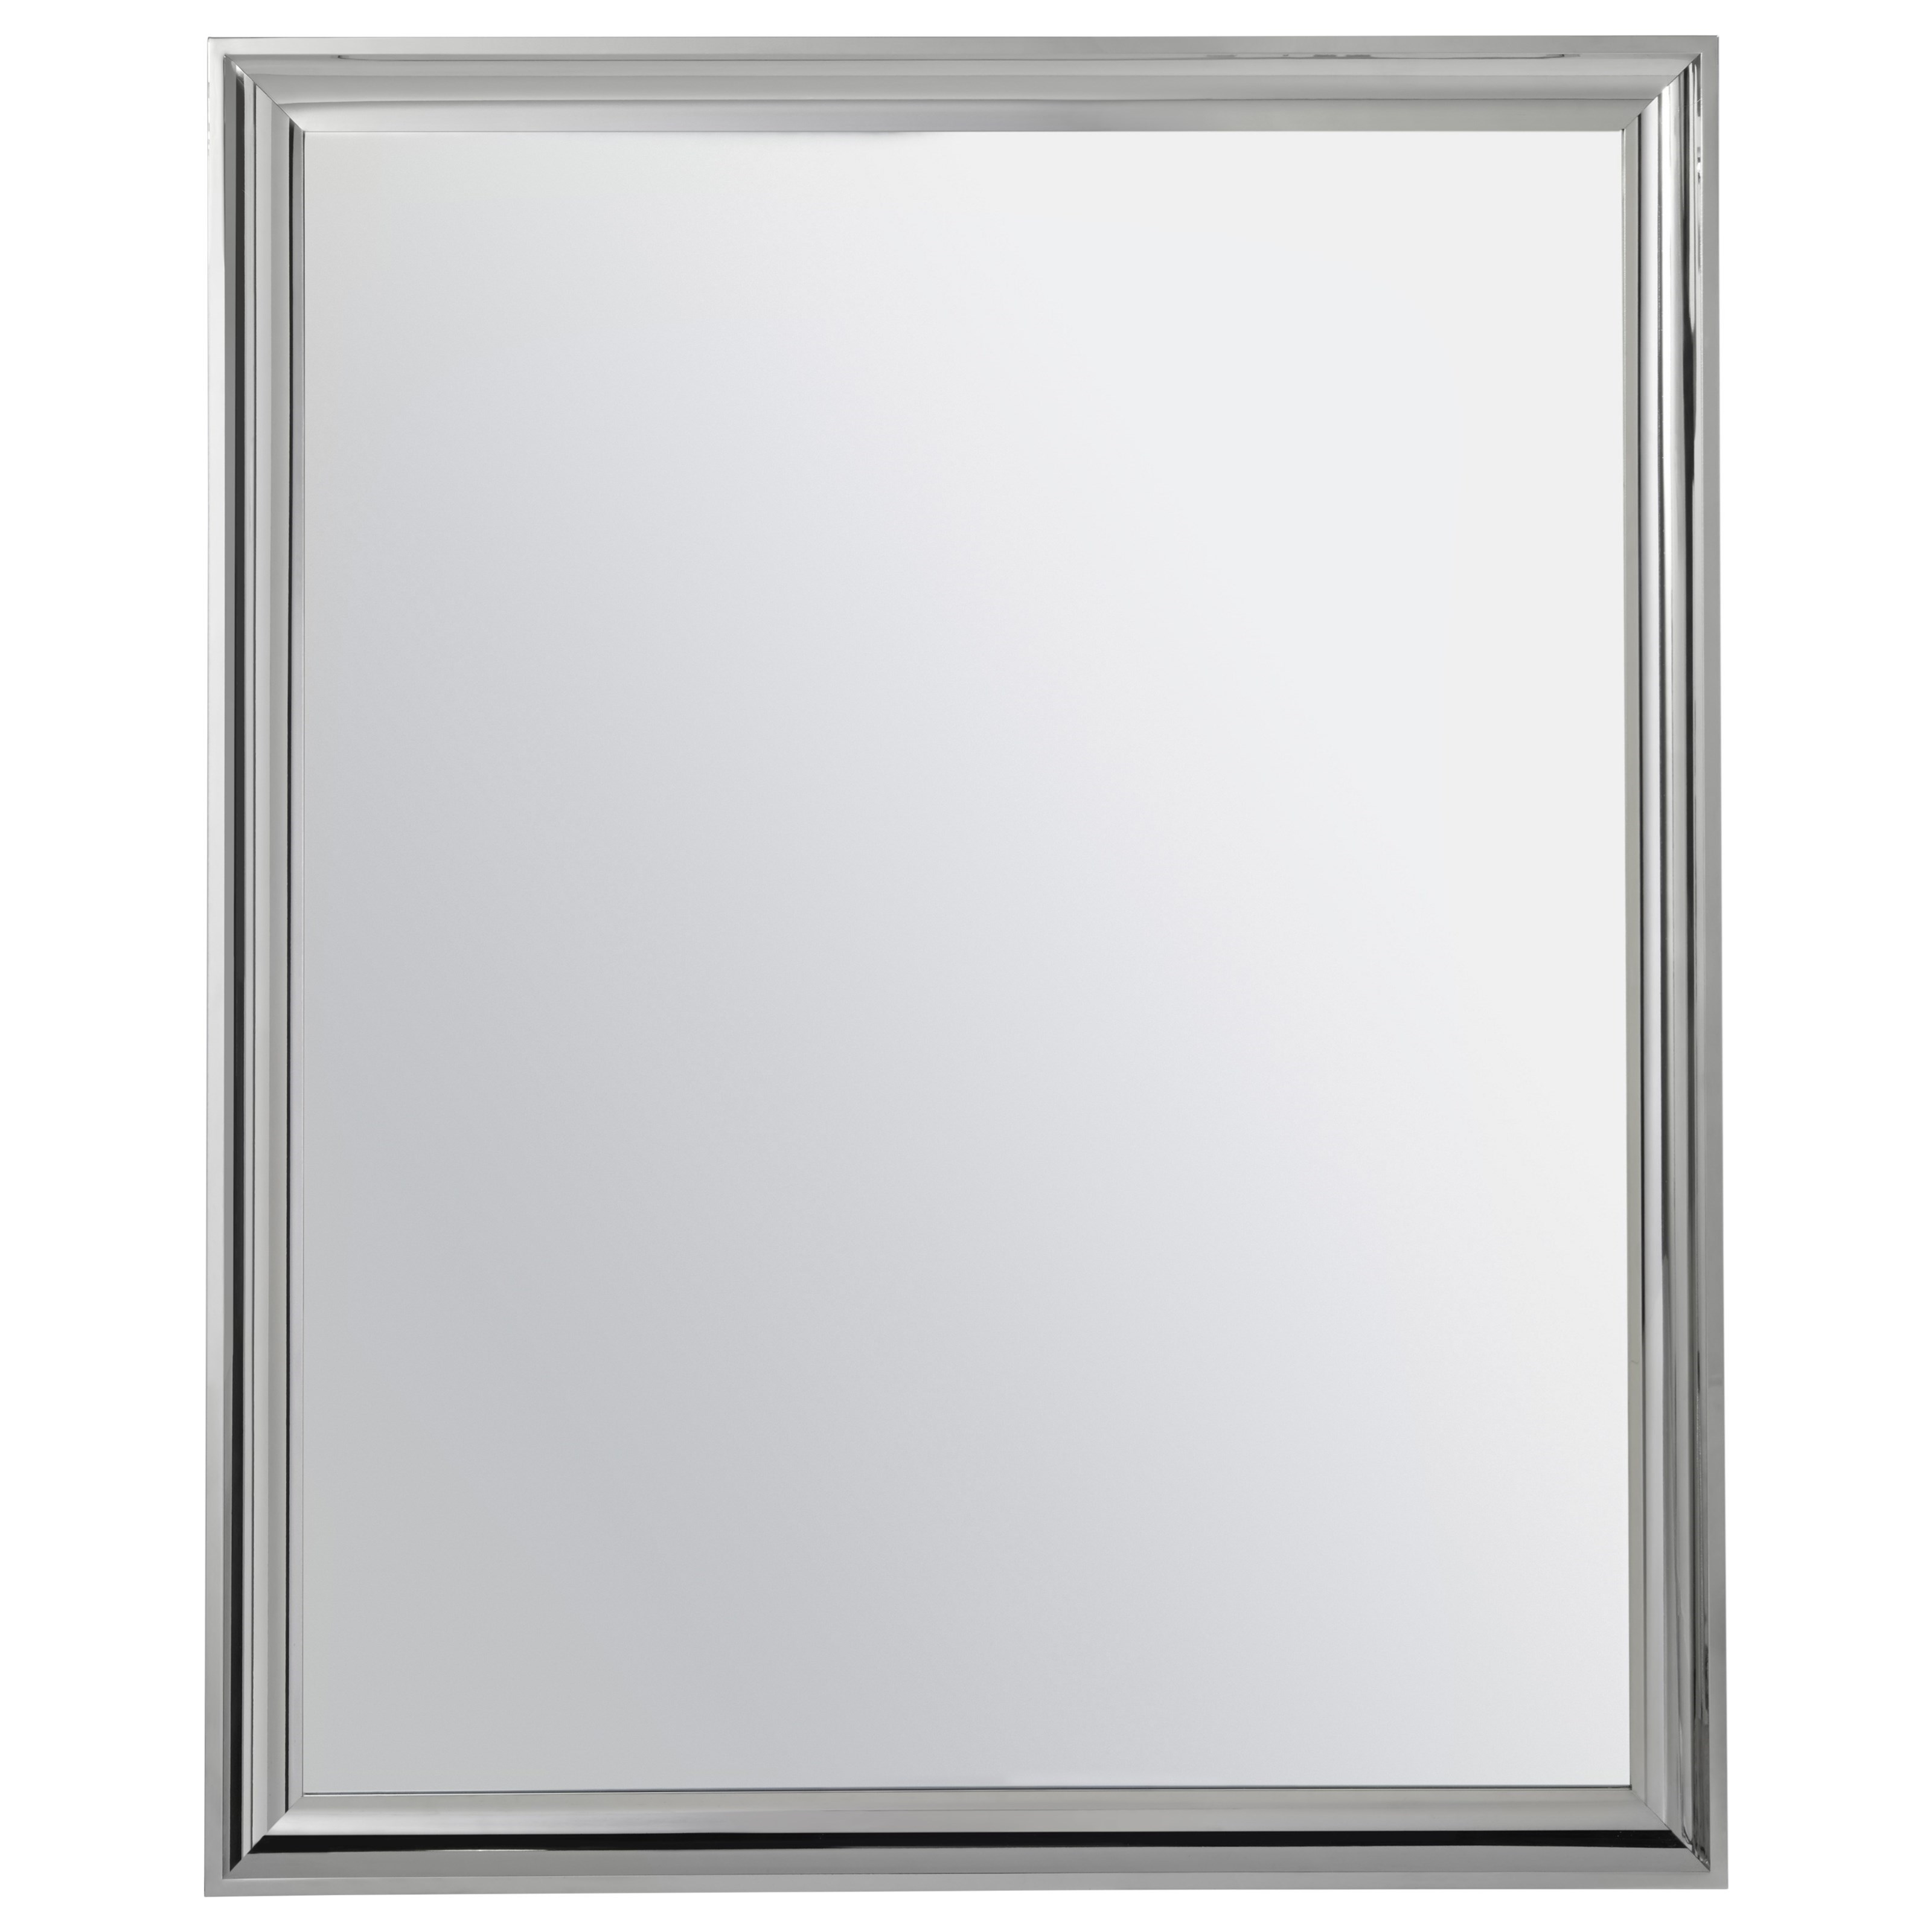 Zephyr Mirror by Universal at Baer's Furniture